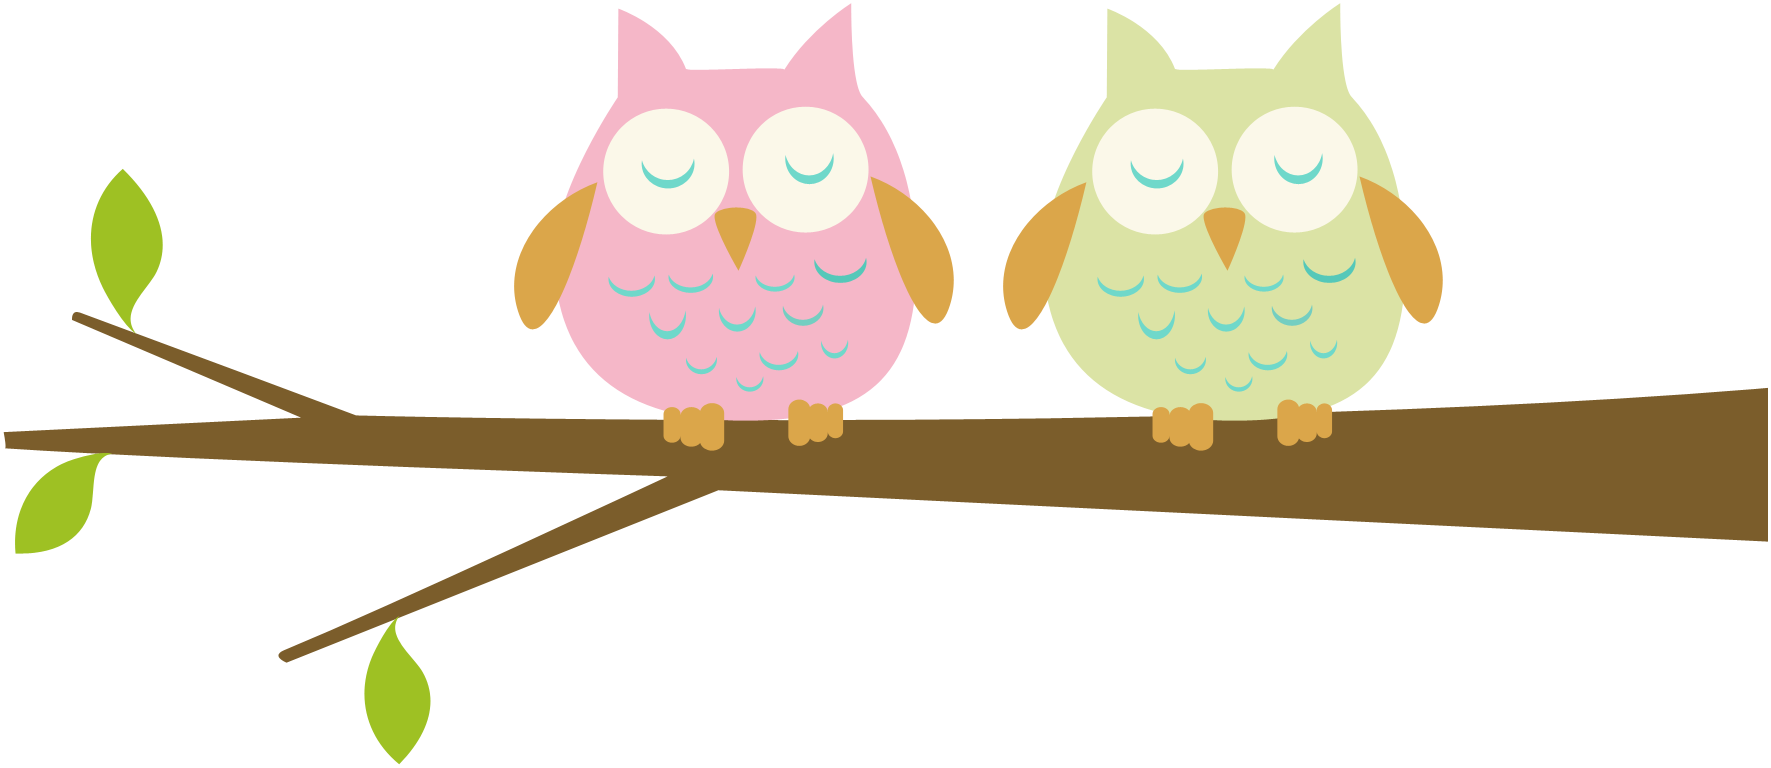 Sleeping owl clipart free graphic black and white library Best Owl Clipart #14860 - Clipartion.com graphic black and white library